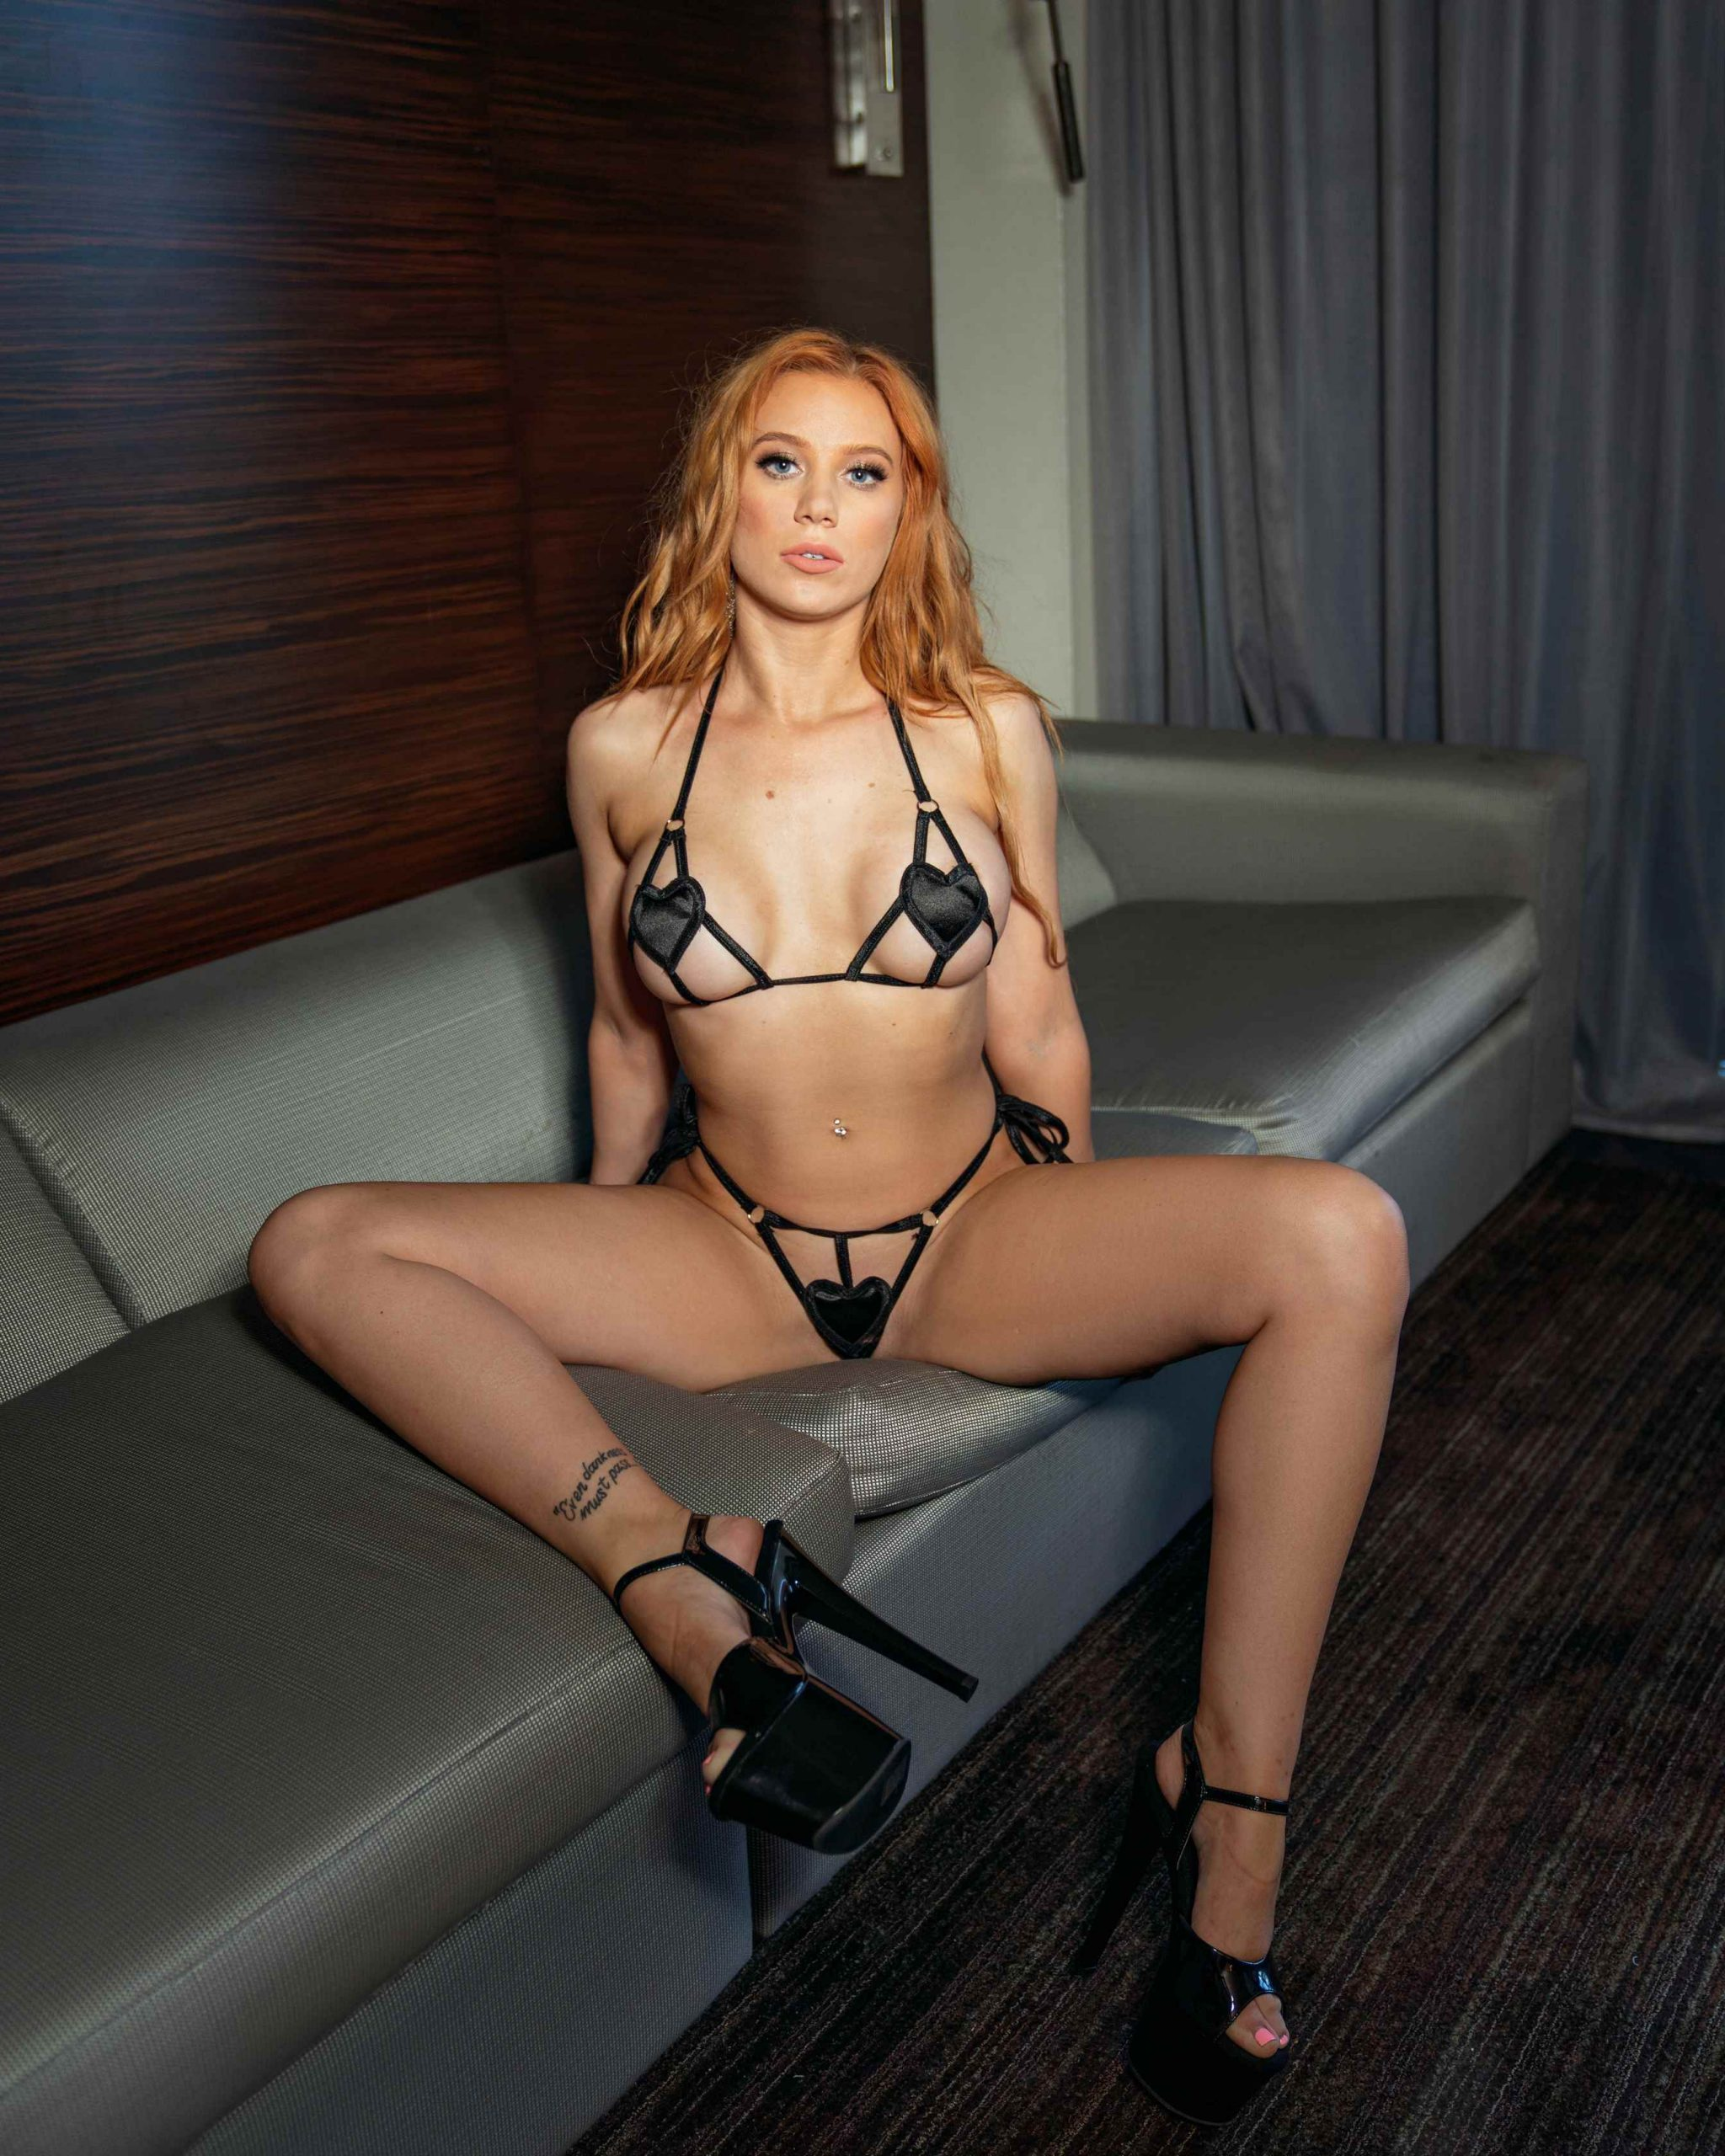 Muse X Nude Onlyfans Photos Leaked 0014